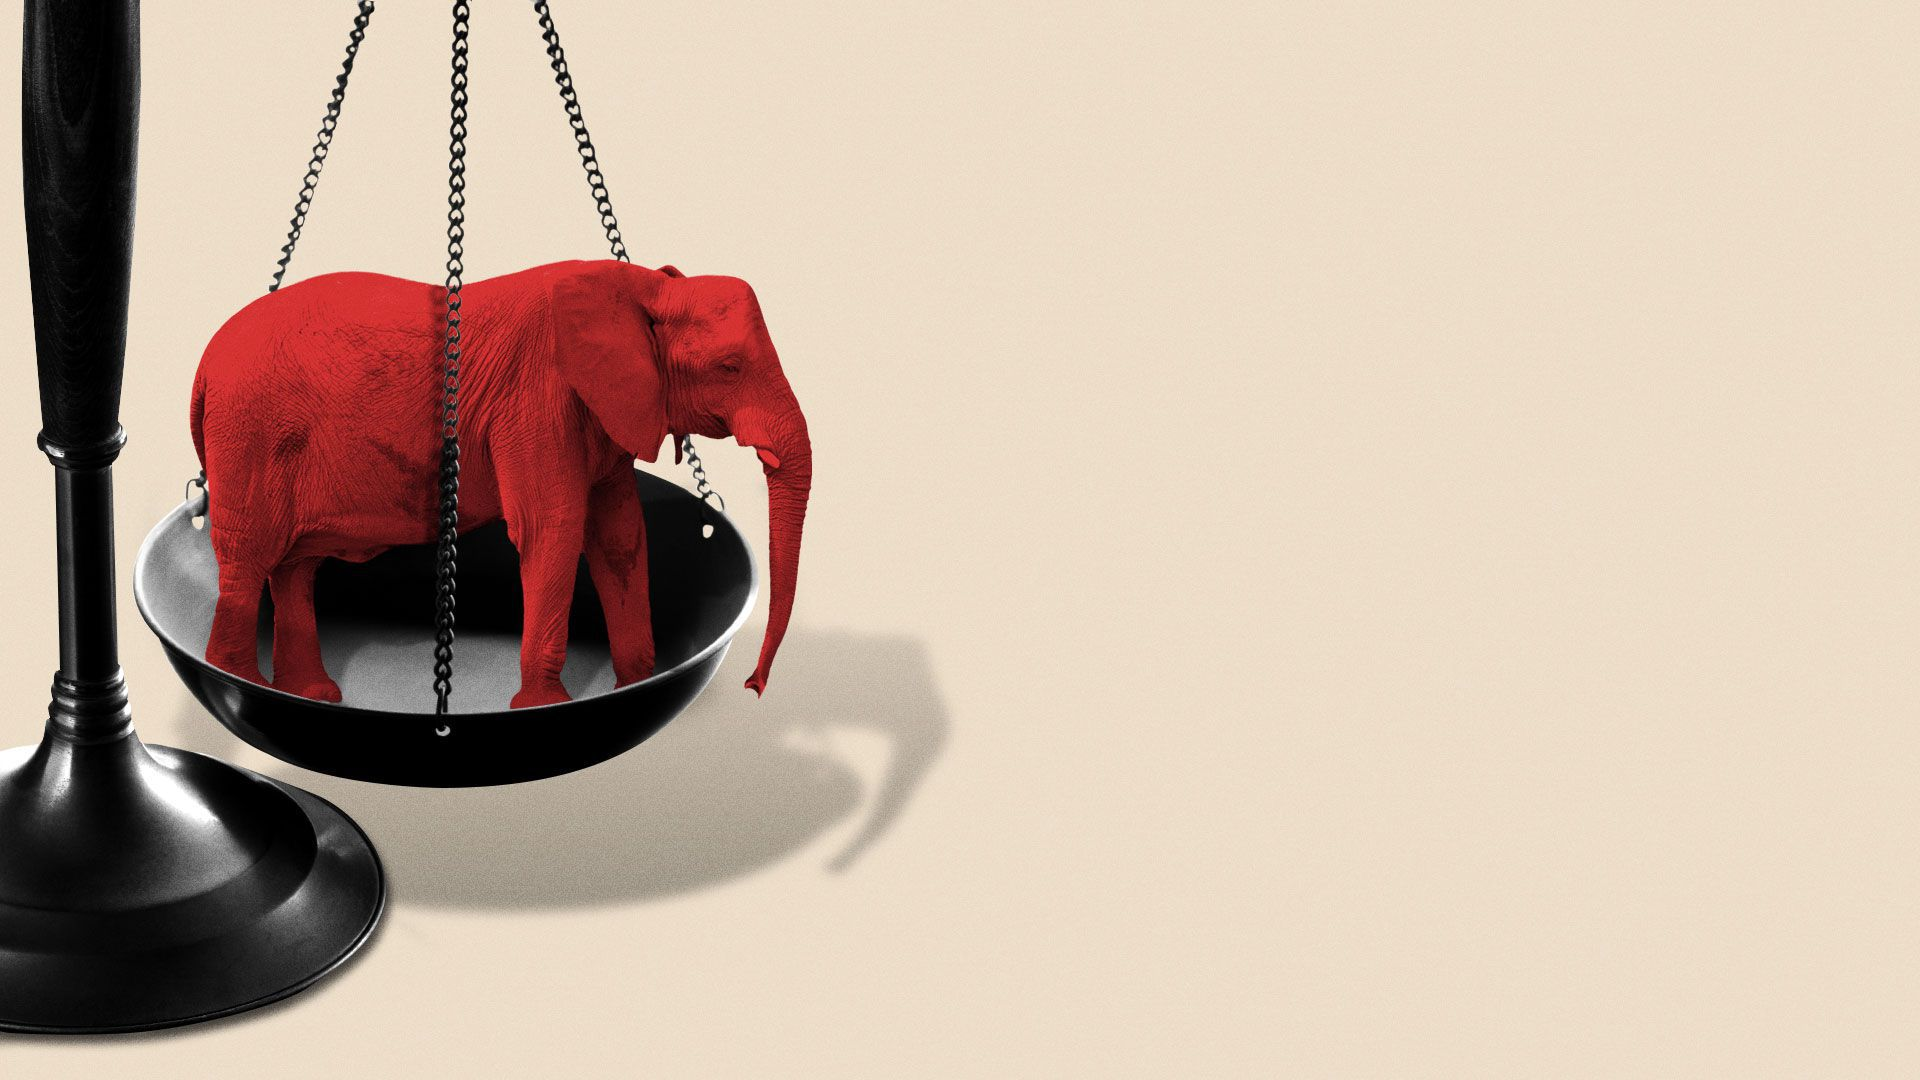 Illustration of scales of justice weighted down by an elephant